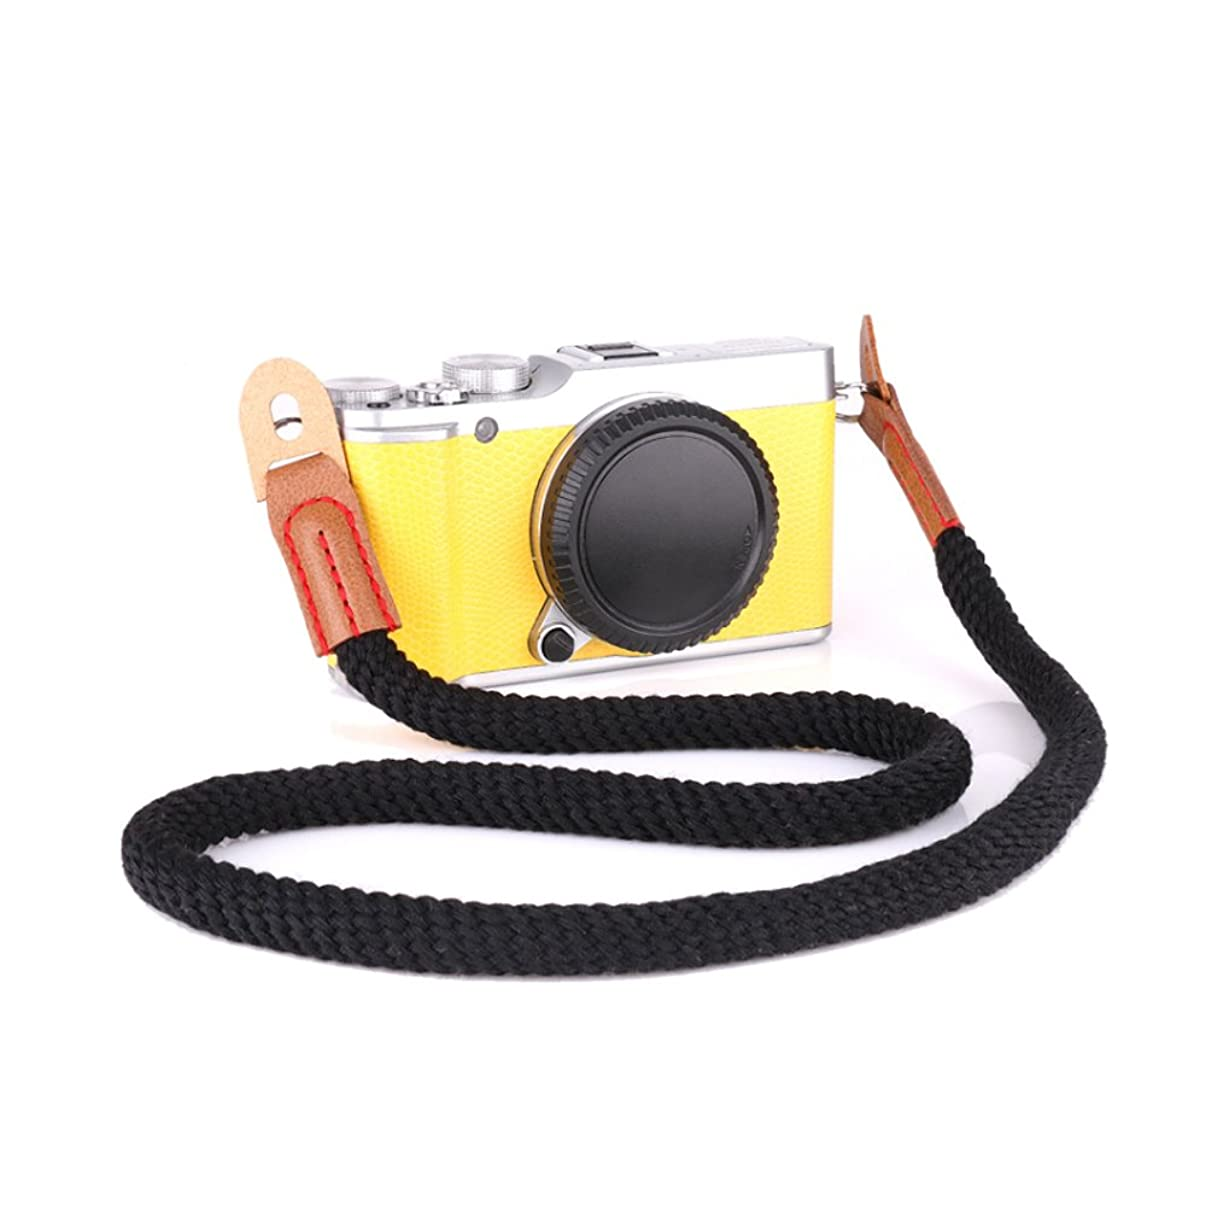 LXH Cotton Camera Wrist Strap, Soft Cotton with Leather Camera Shoulder Neck Strap,DSLR SLR universal shoulder strap suitable for Nikon, Canon, Sony, Olympus, Fujifilm, Samsung and Pentax 29.4inch